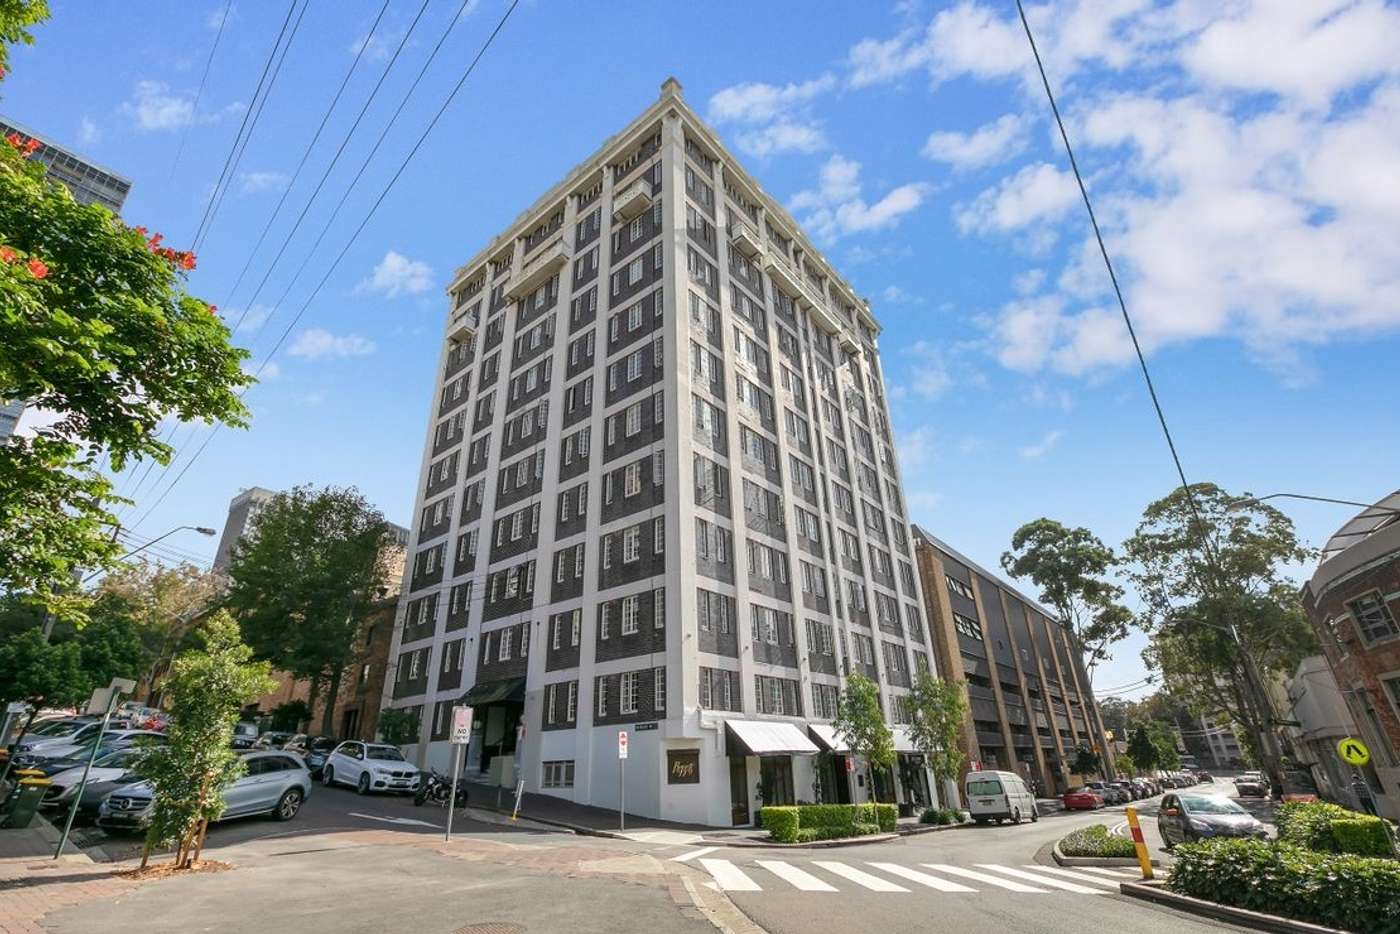 Main view of Homely apartment listing, 1/6 Stanley Street, Darlinghurst NSW 2010